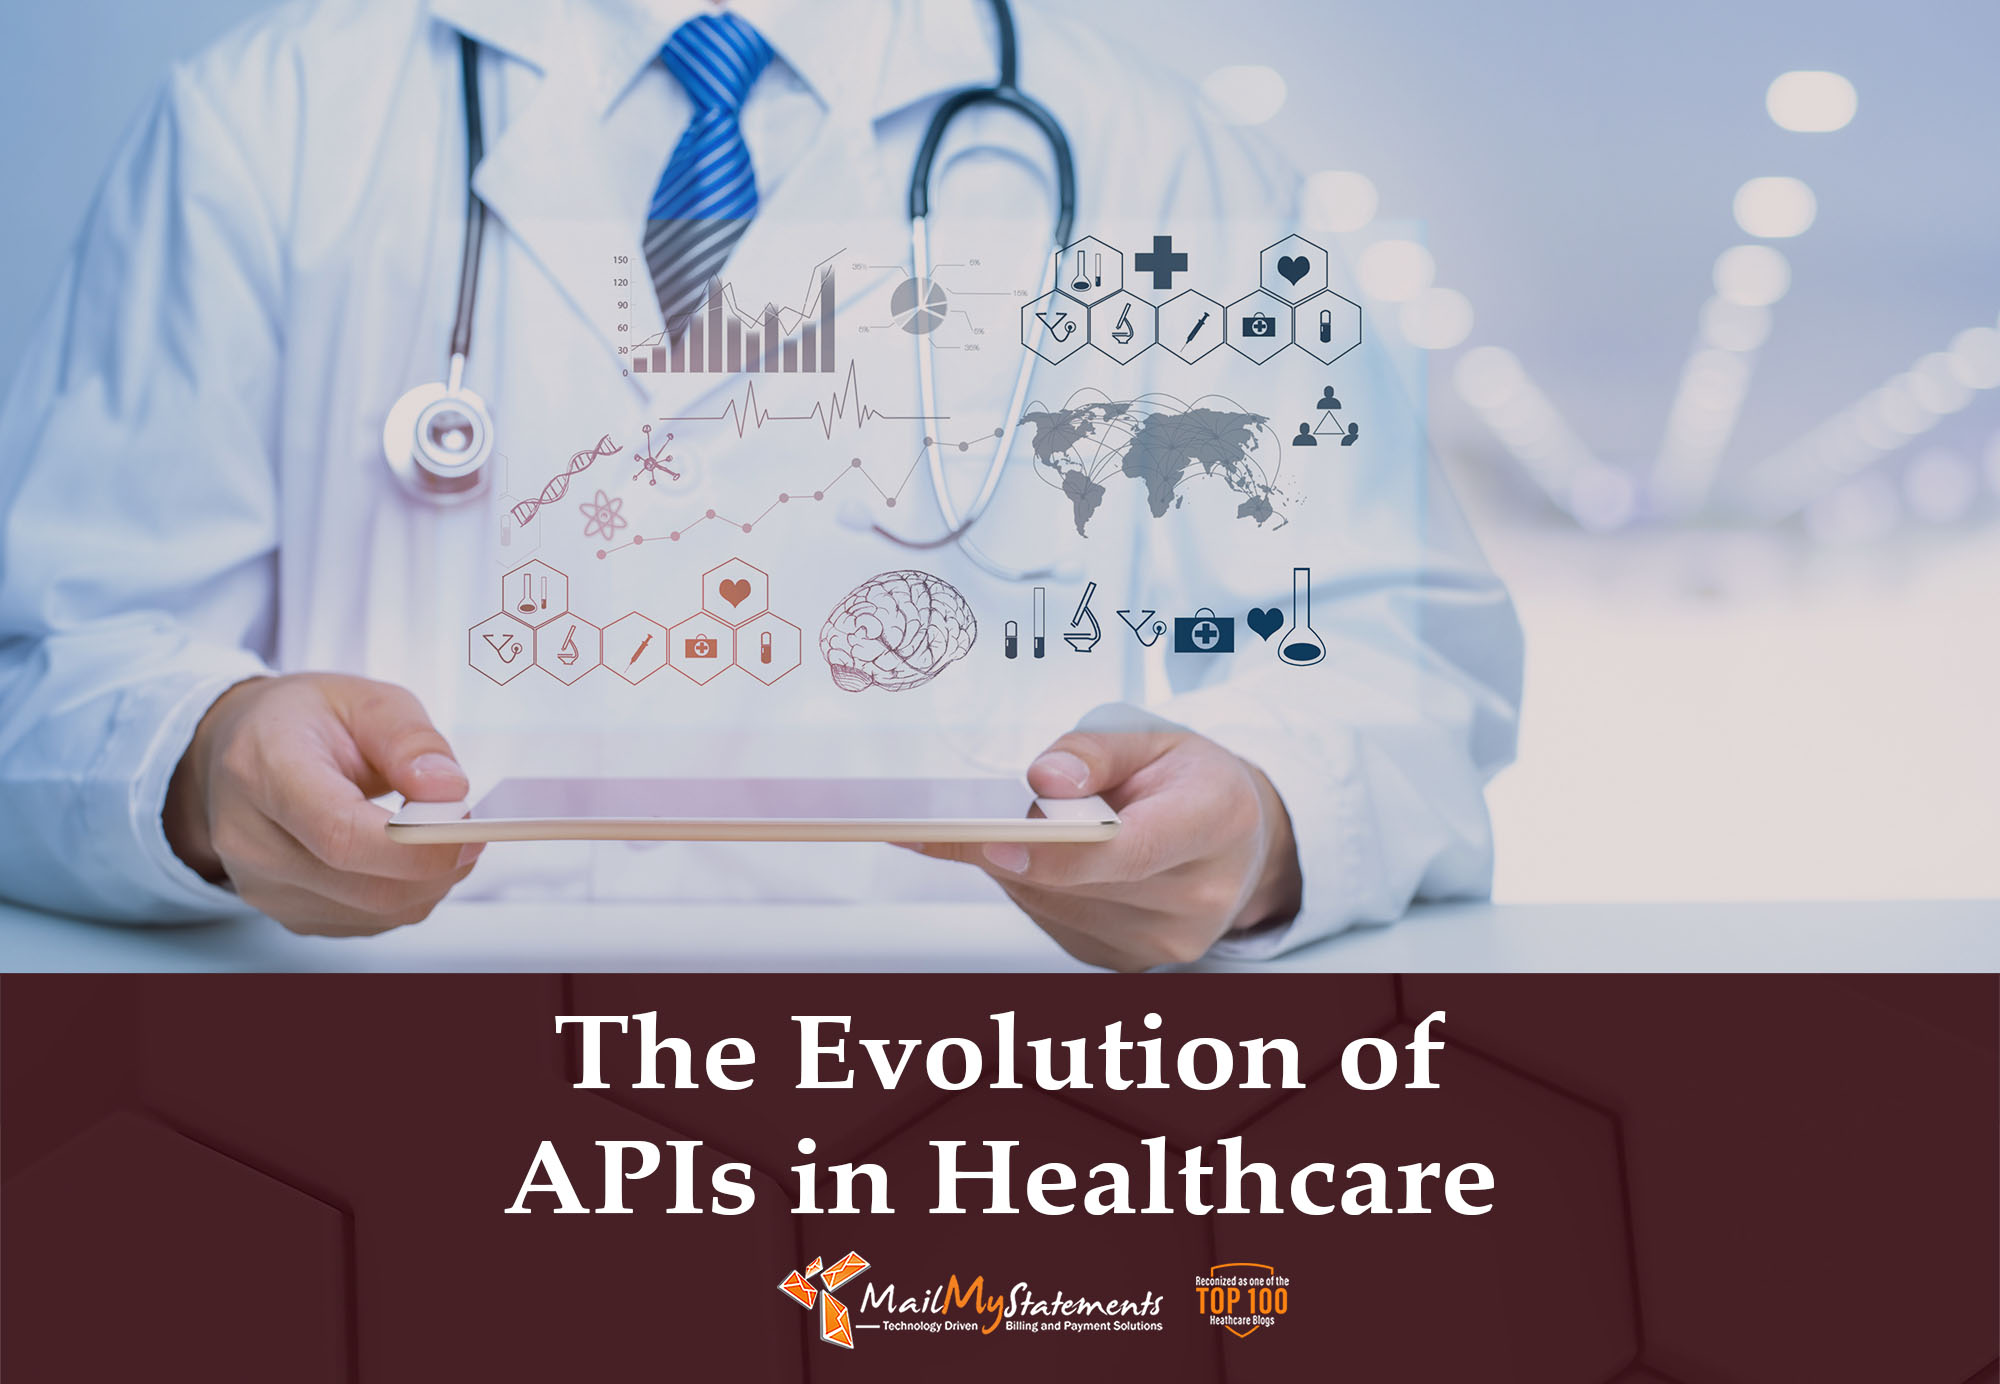 The Evolution of APIs in Healthcare